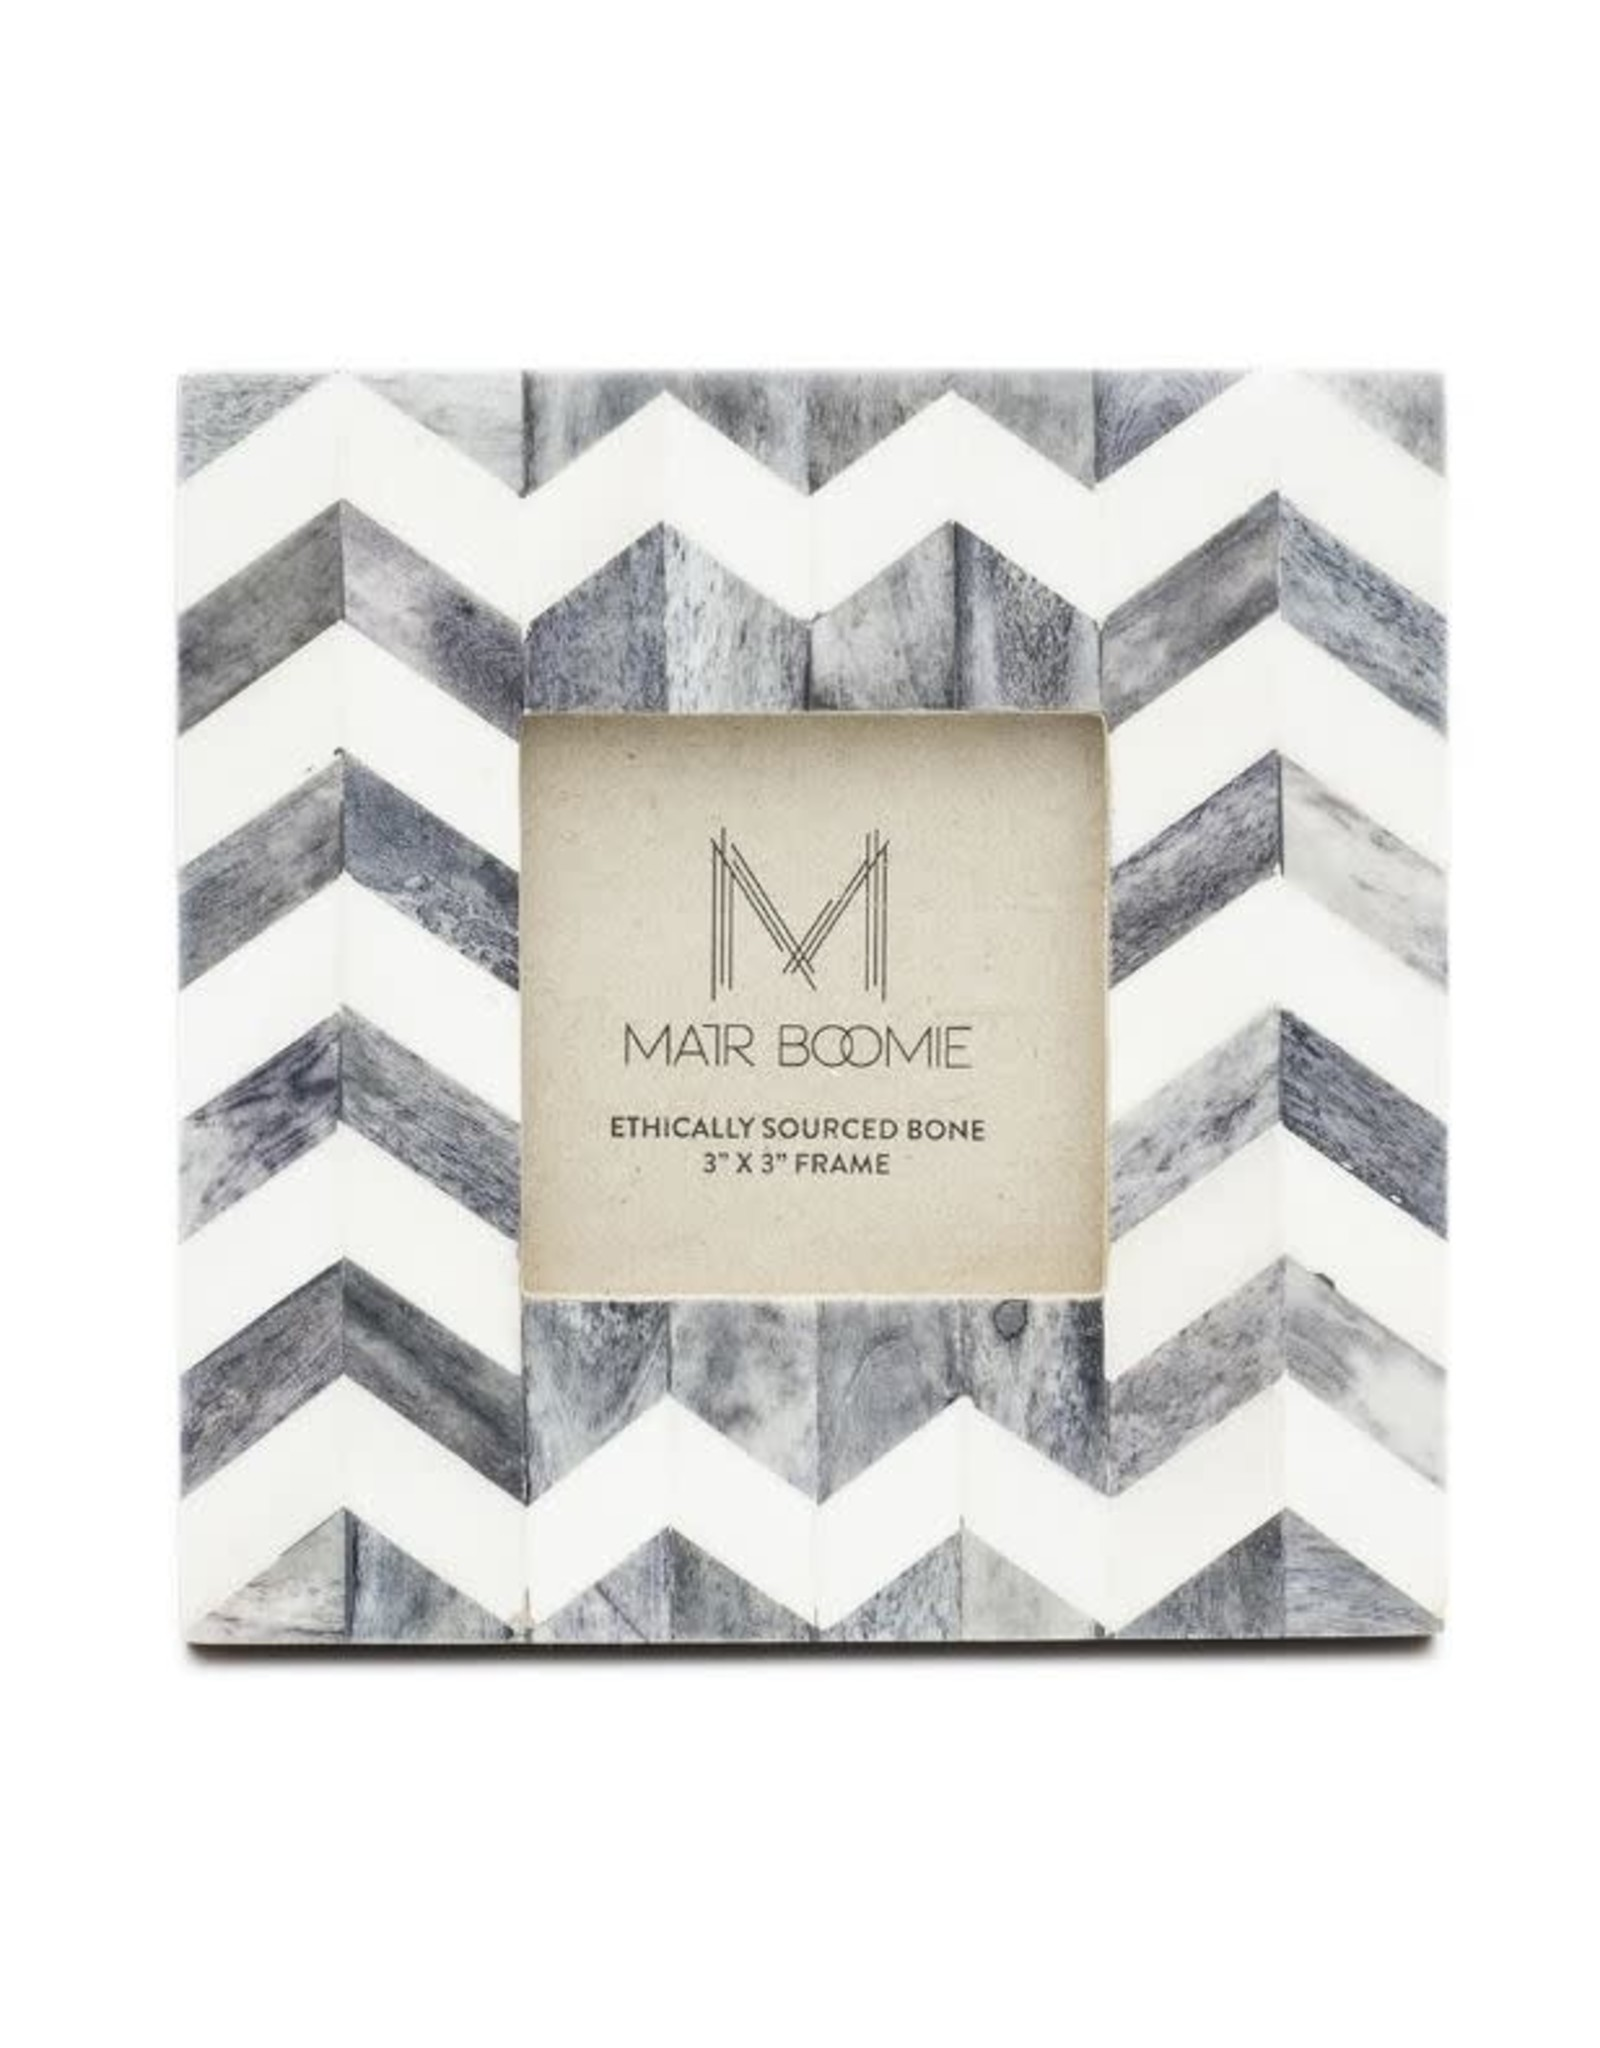 Matr Boomie Rudra Storm Photo Frame